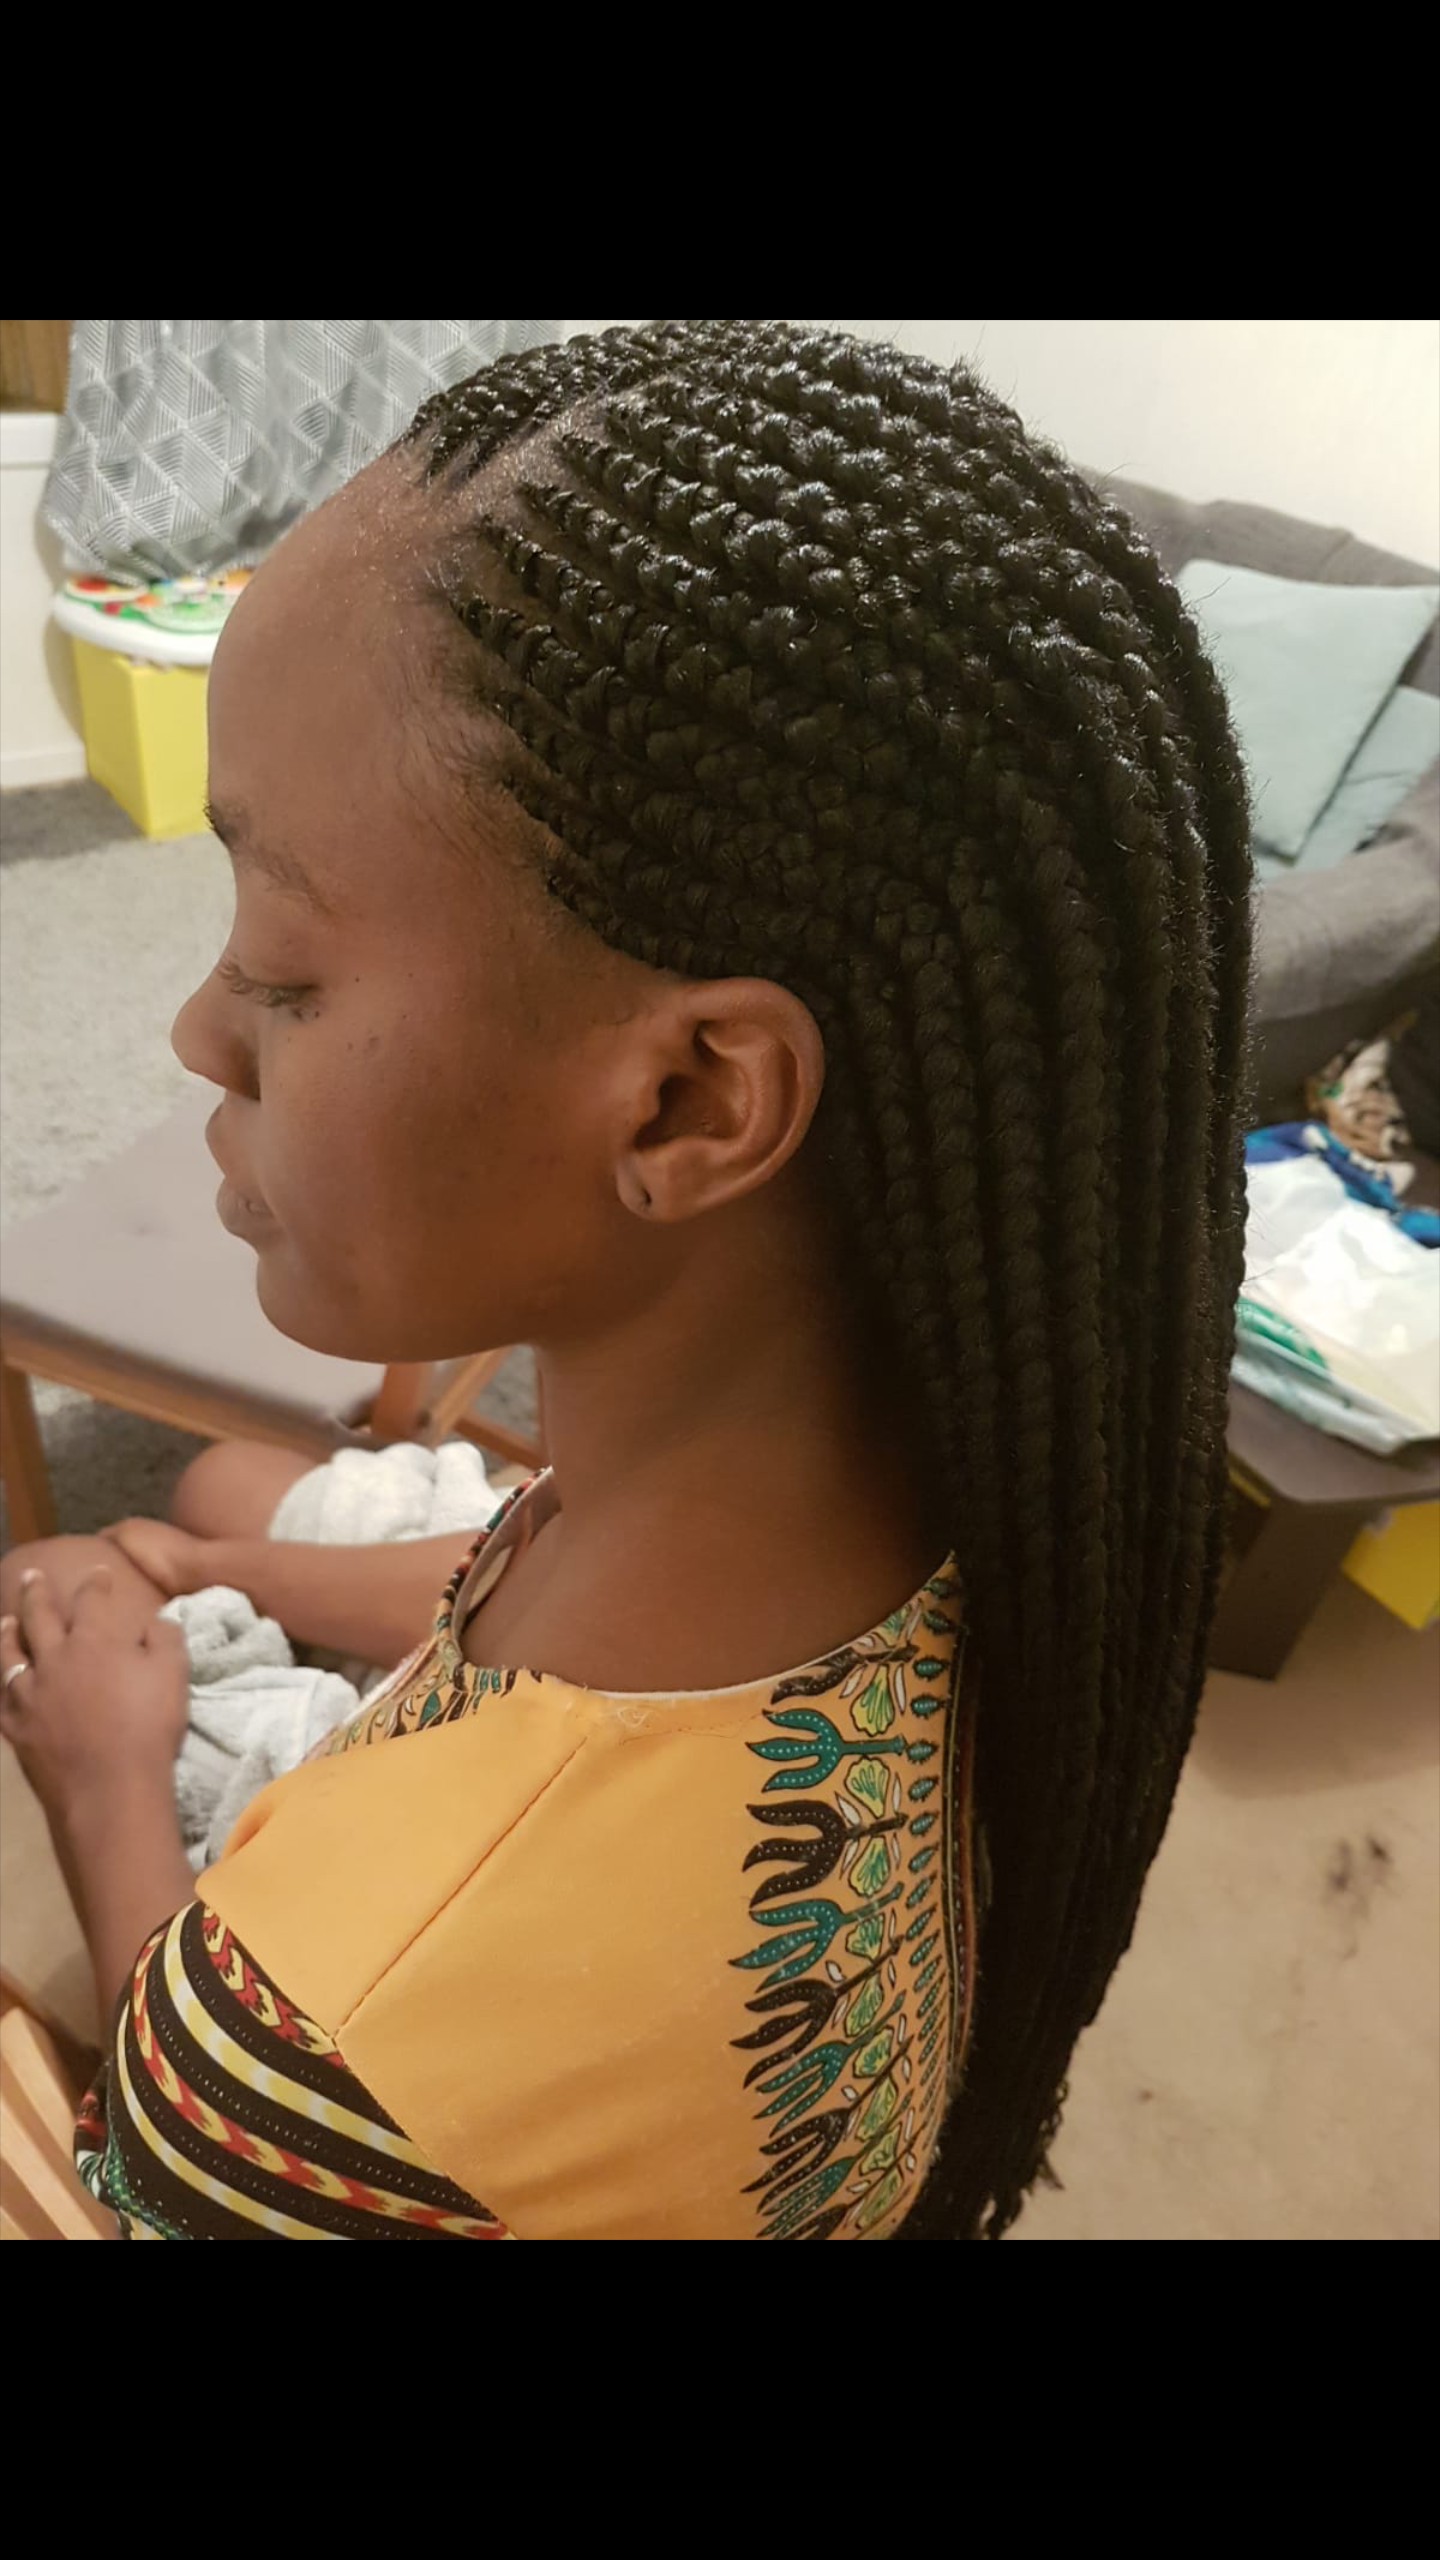 salon de coiffure afro tresse tresses box braids crochet braids vanilles tissages paris 75 77 78 91 92 93 94 95 IVUNXFRH